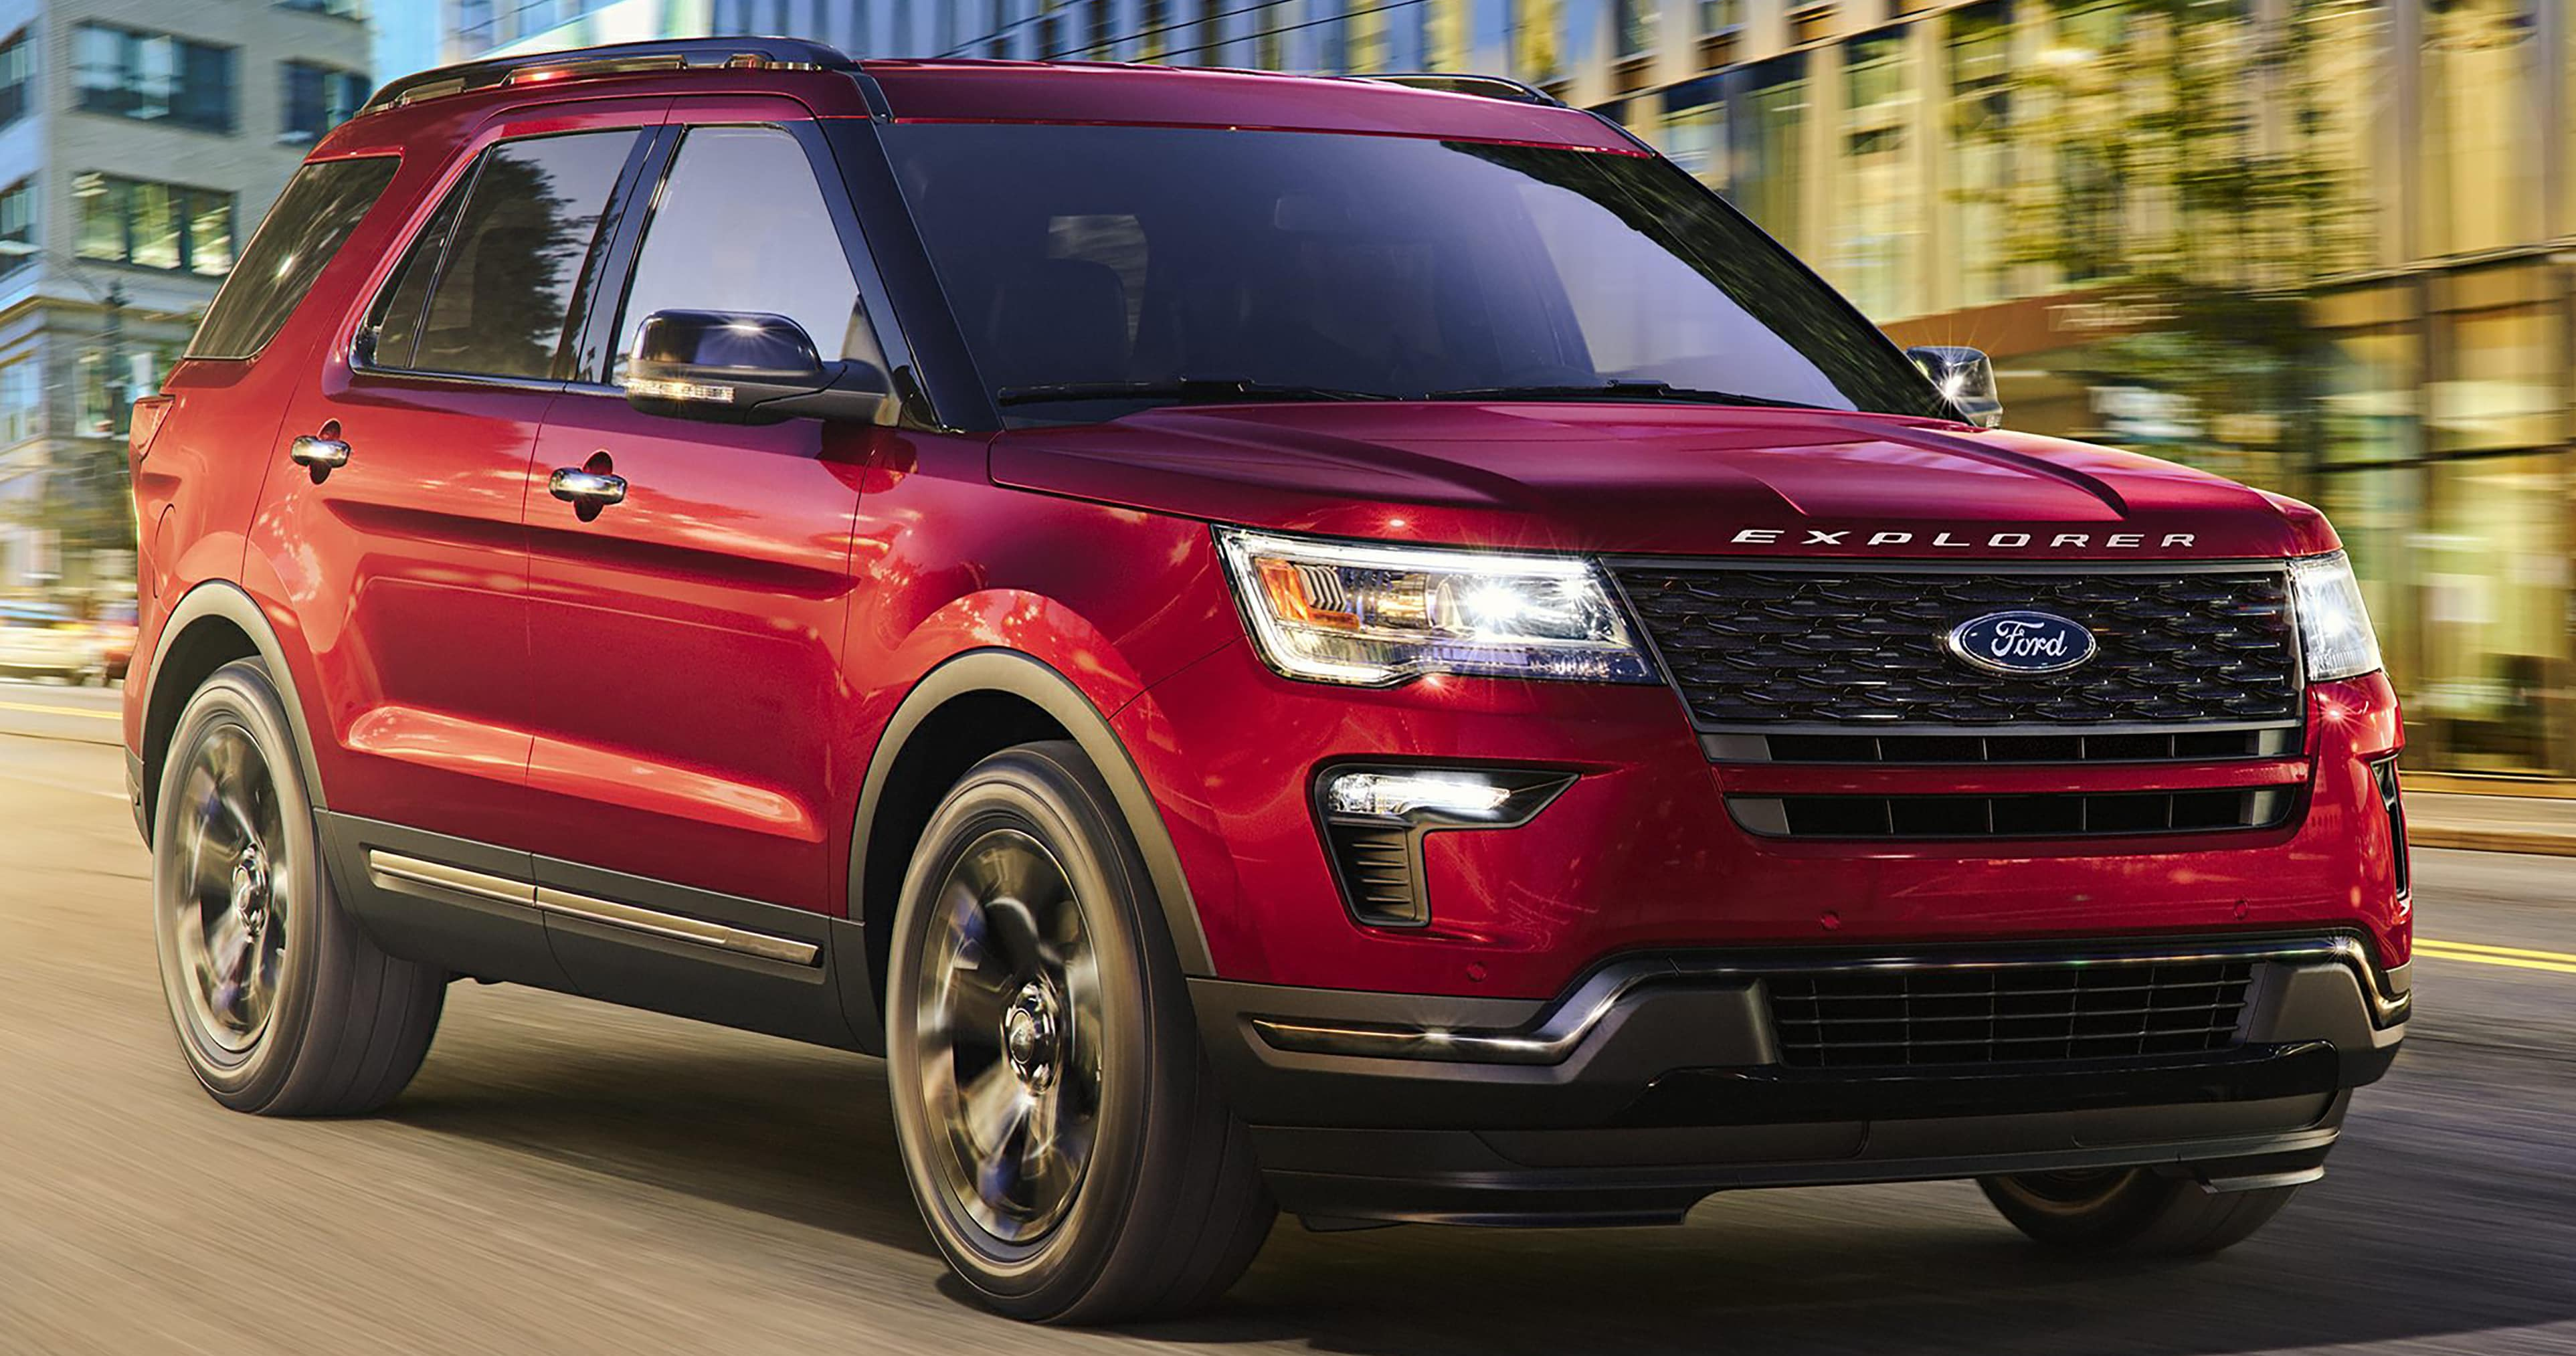 certified ios auto xlt listings ford shadow full explorer